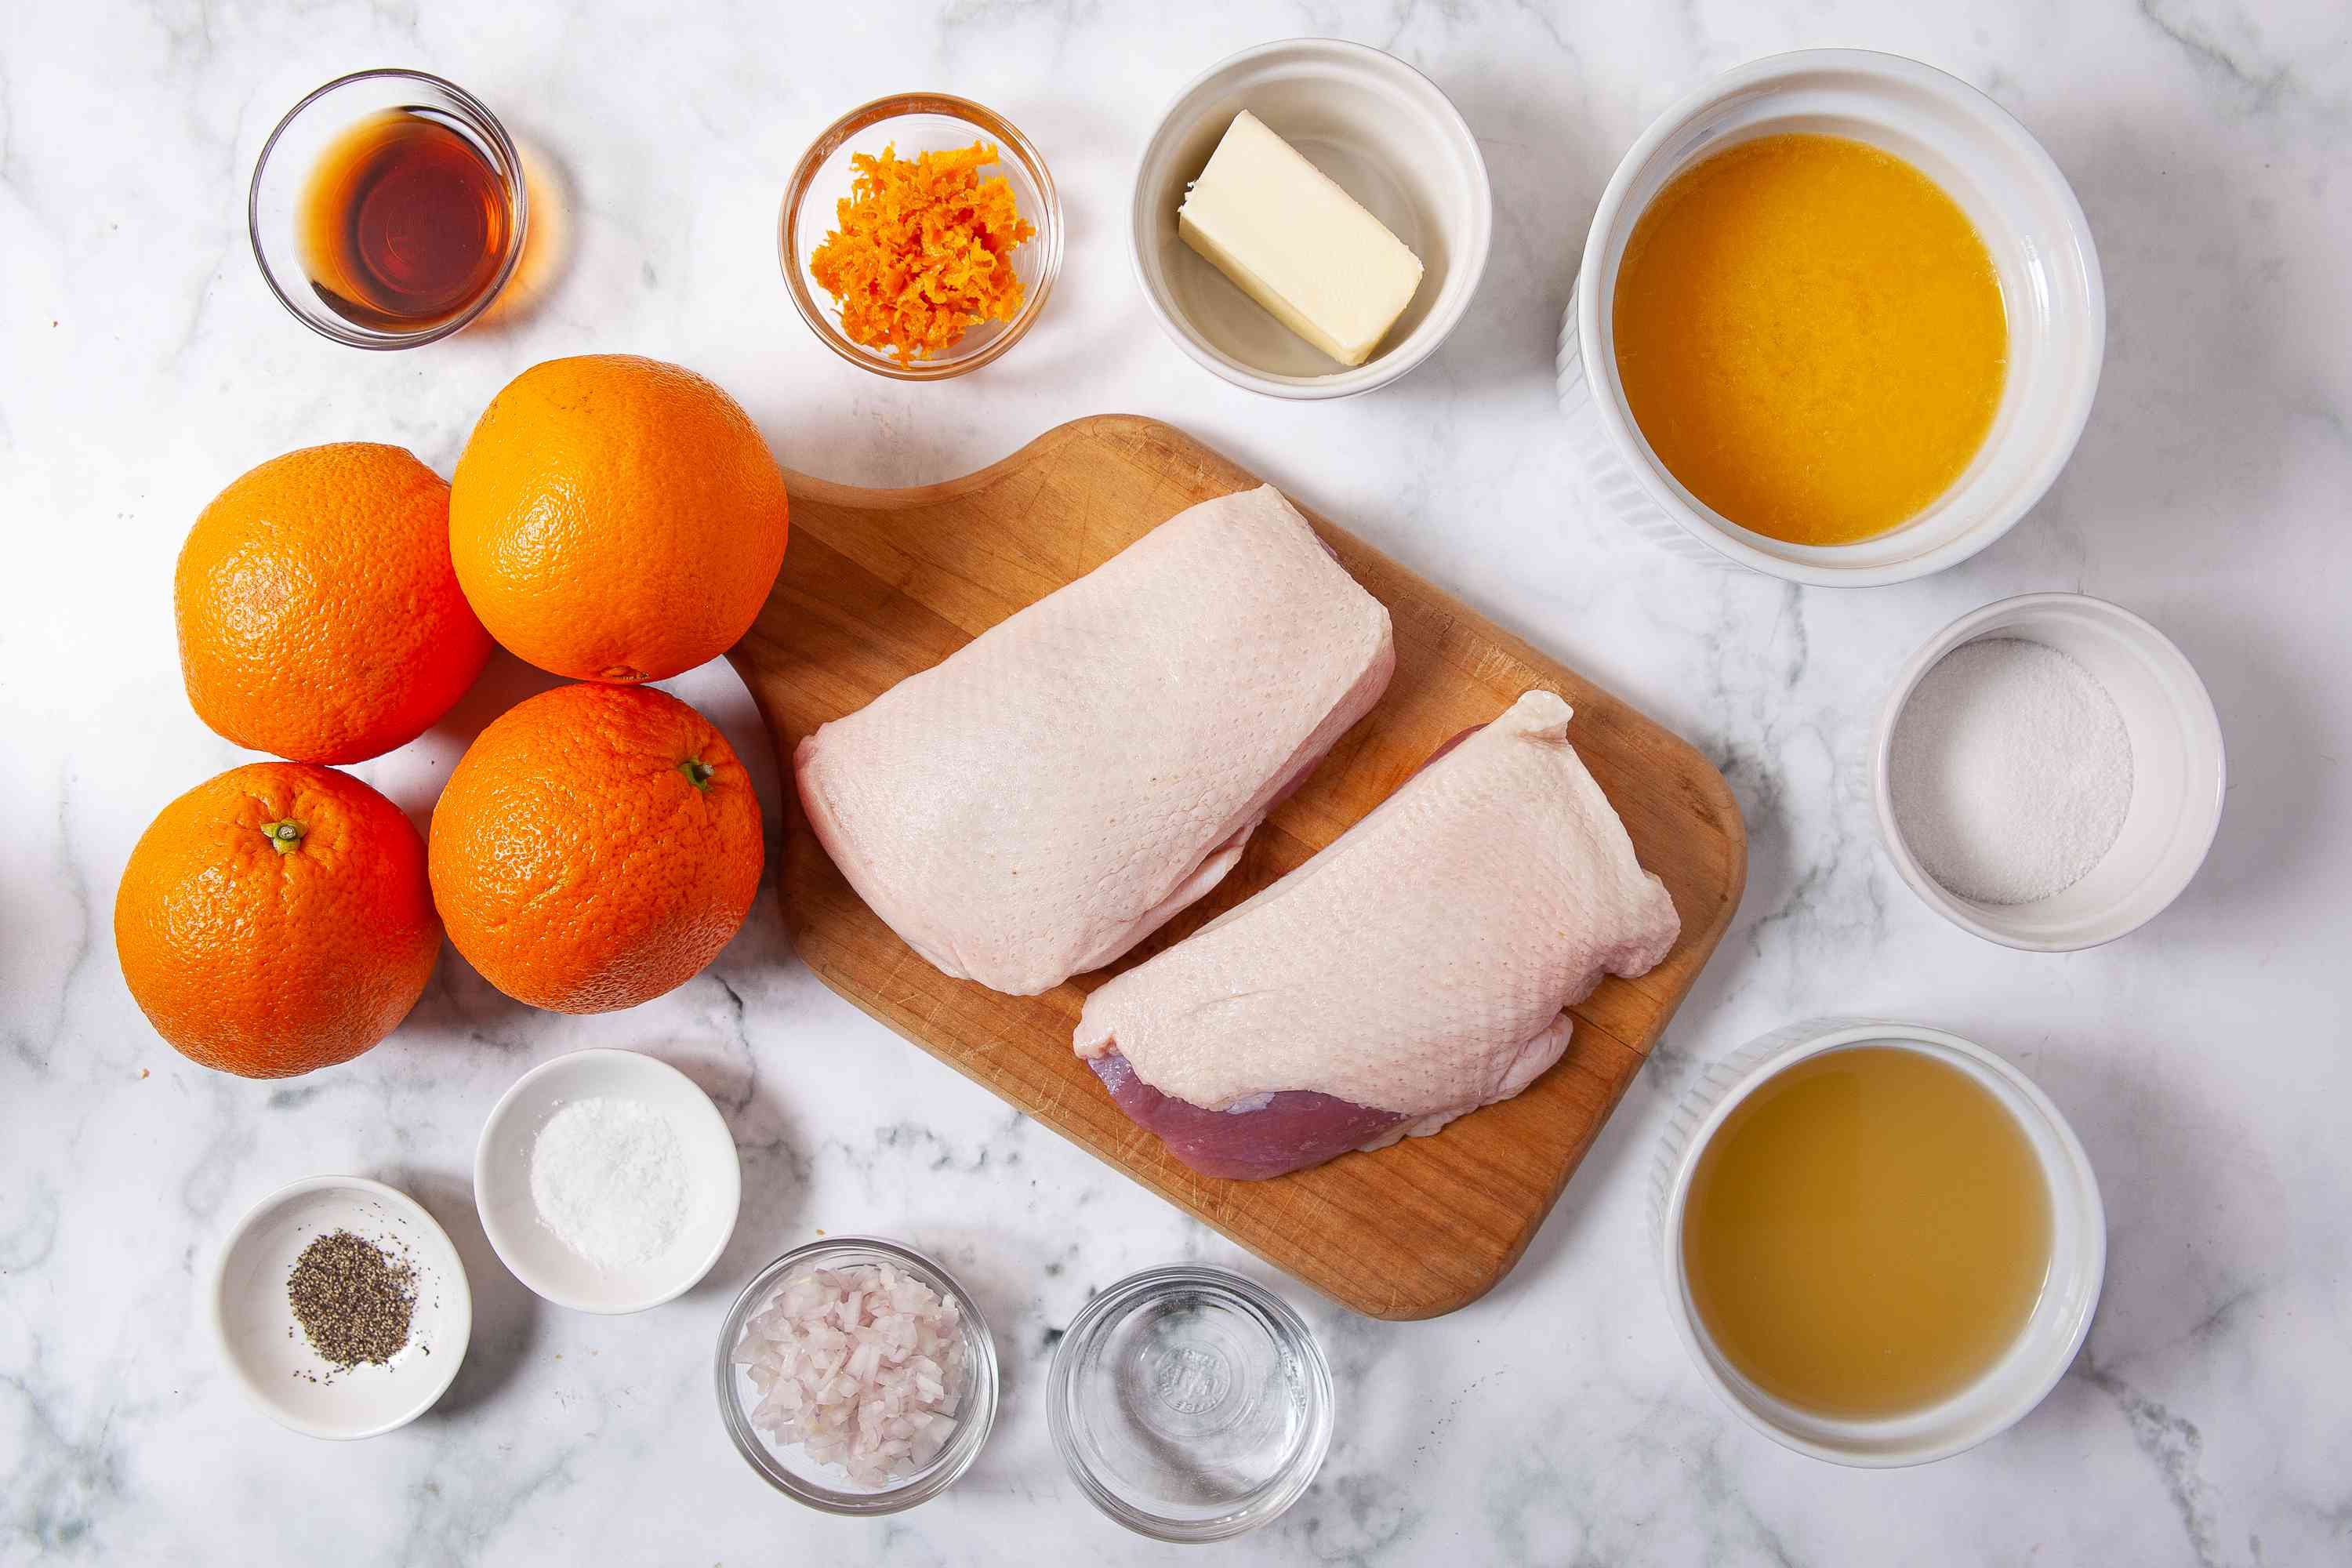 Easy Classic French Duck a l'Orange ingredients